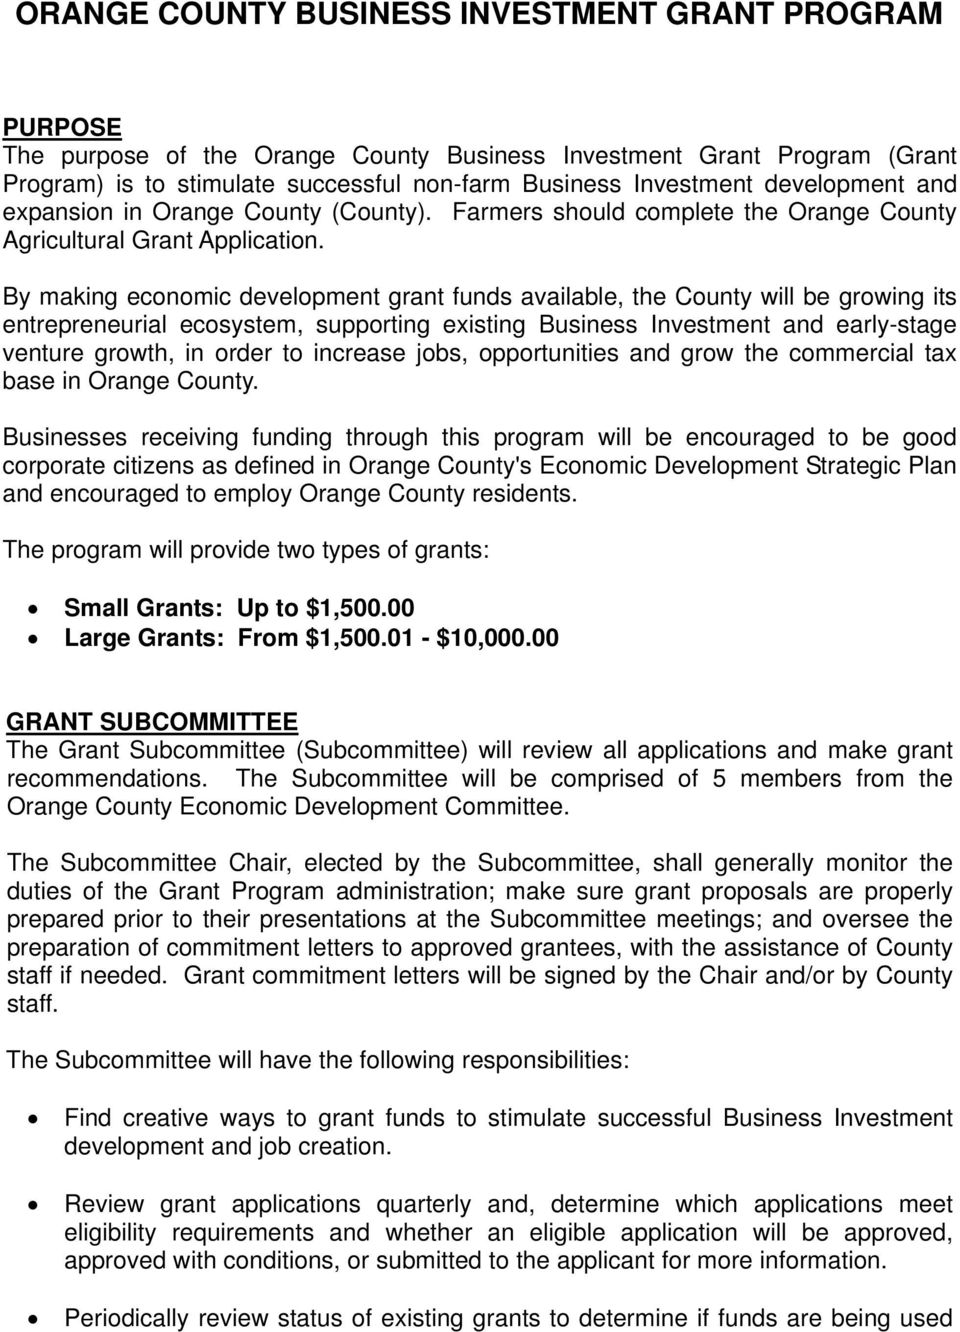 By making economic development grant funds available, the County will be growing its entrepreneurial ecosystem, supporting existing Business Investment and early-stage venture growth, in order to